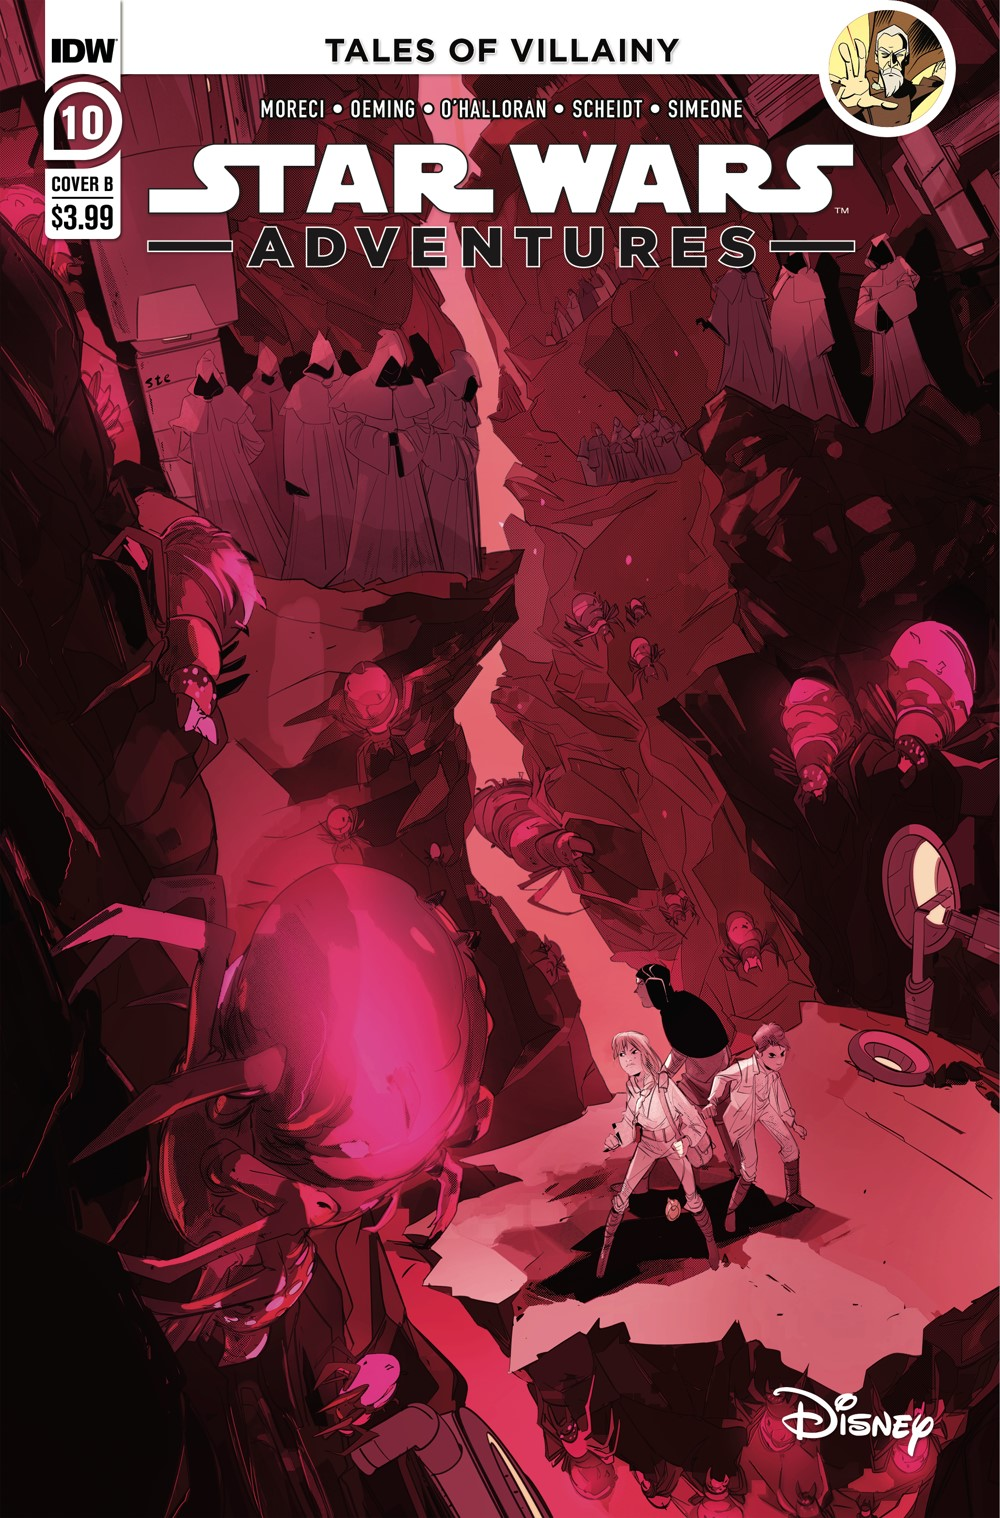 SWA-10-Cover-B ComicList: IDW Publishing New Releases for 09/29/2021